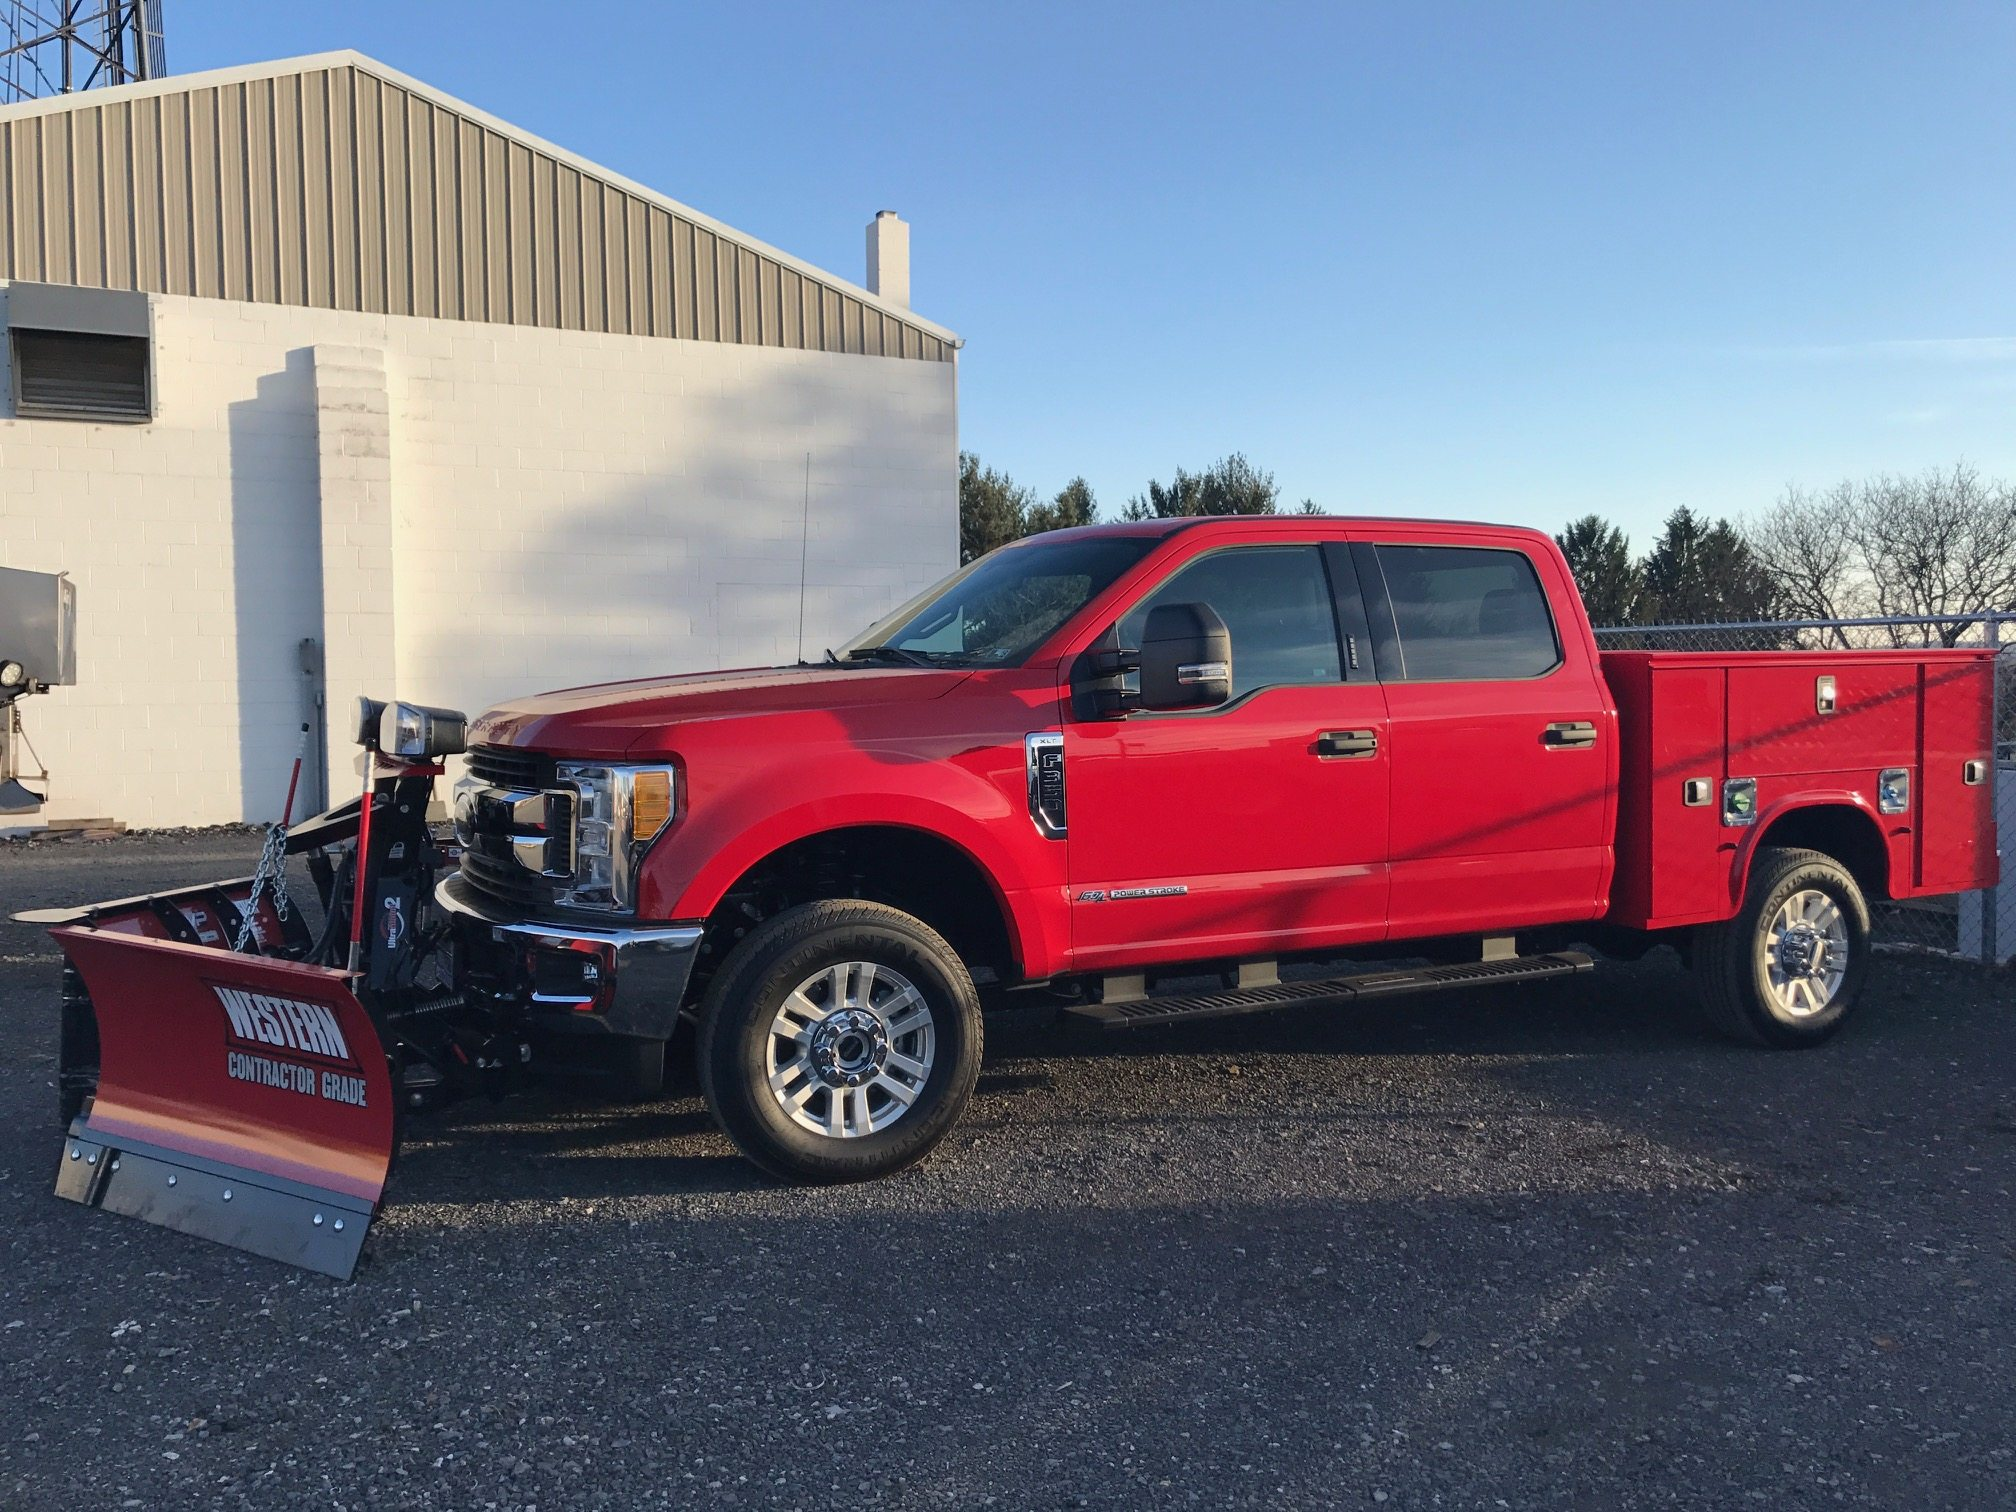 Red truck with plow